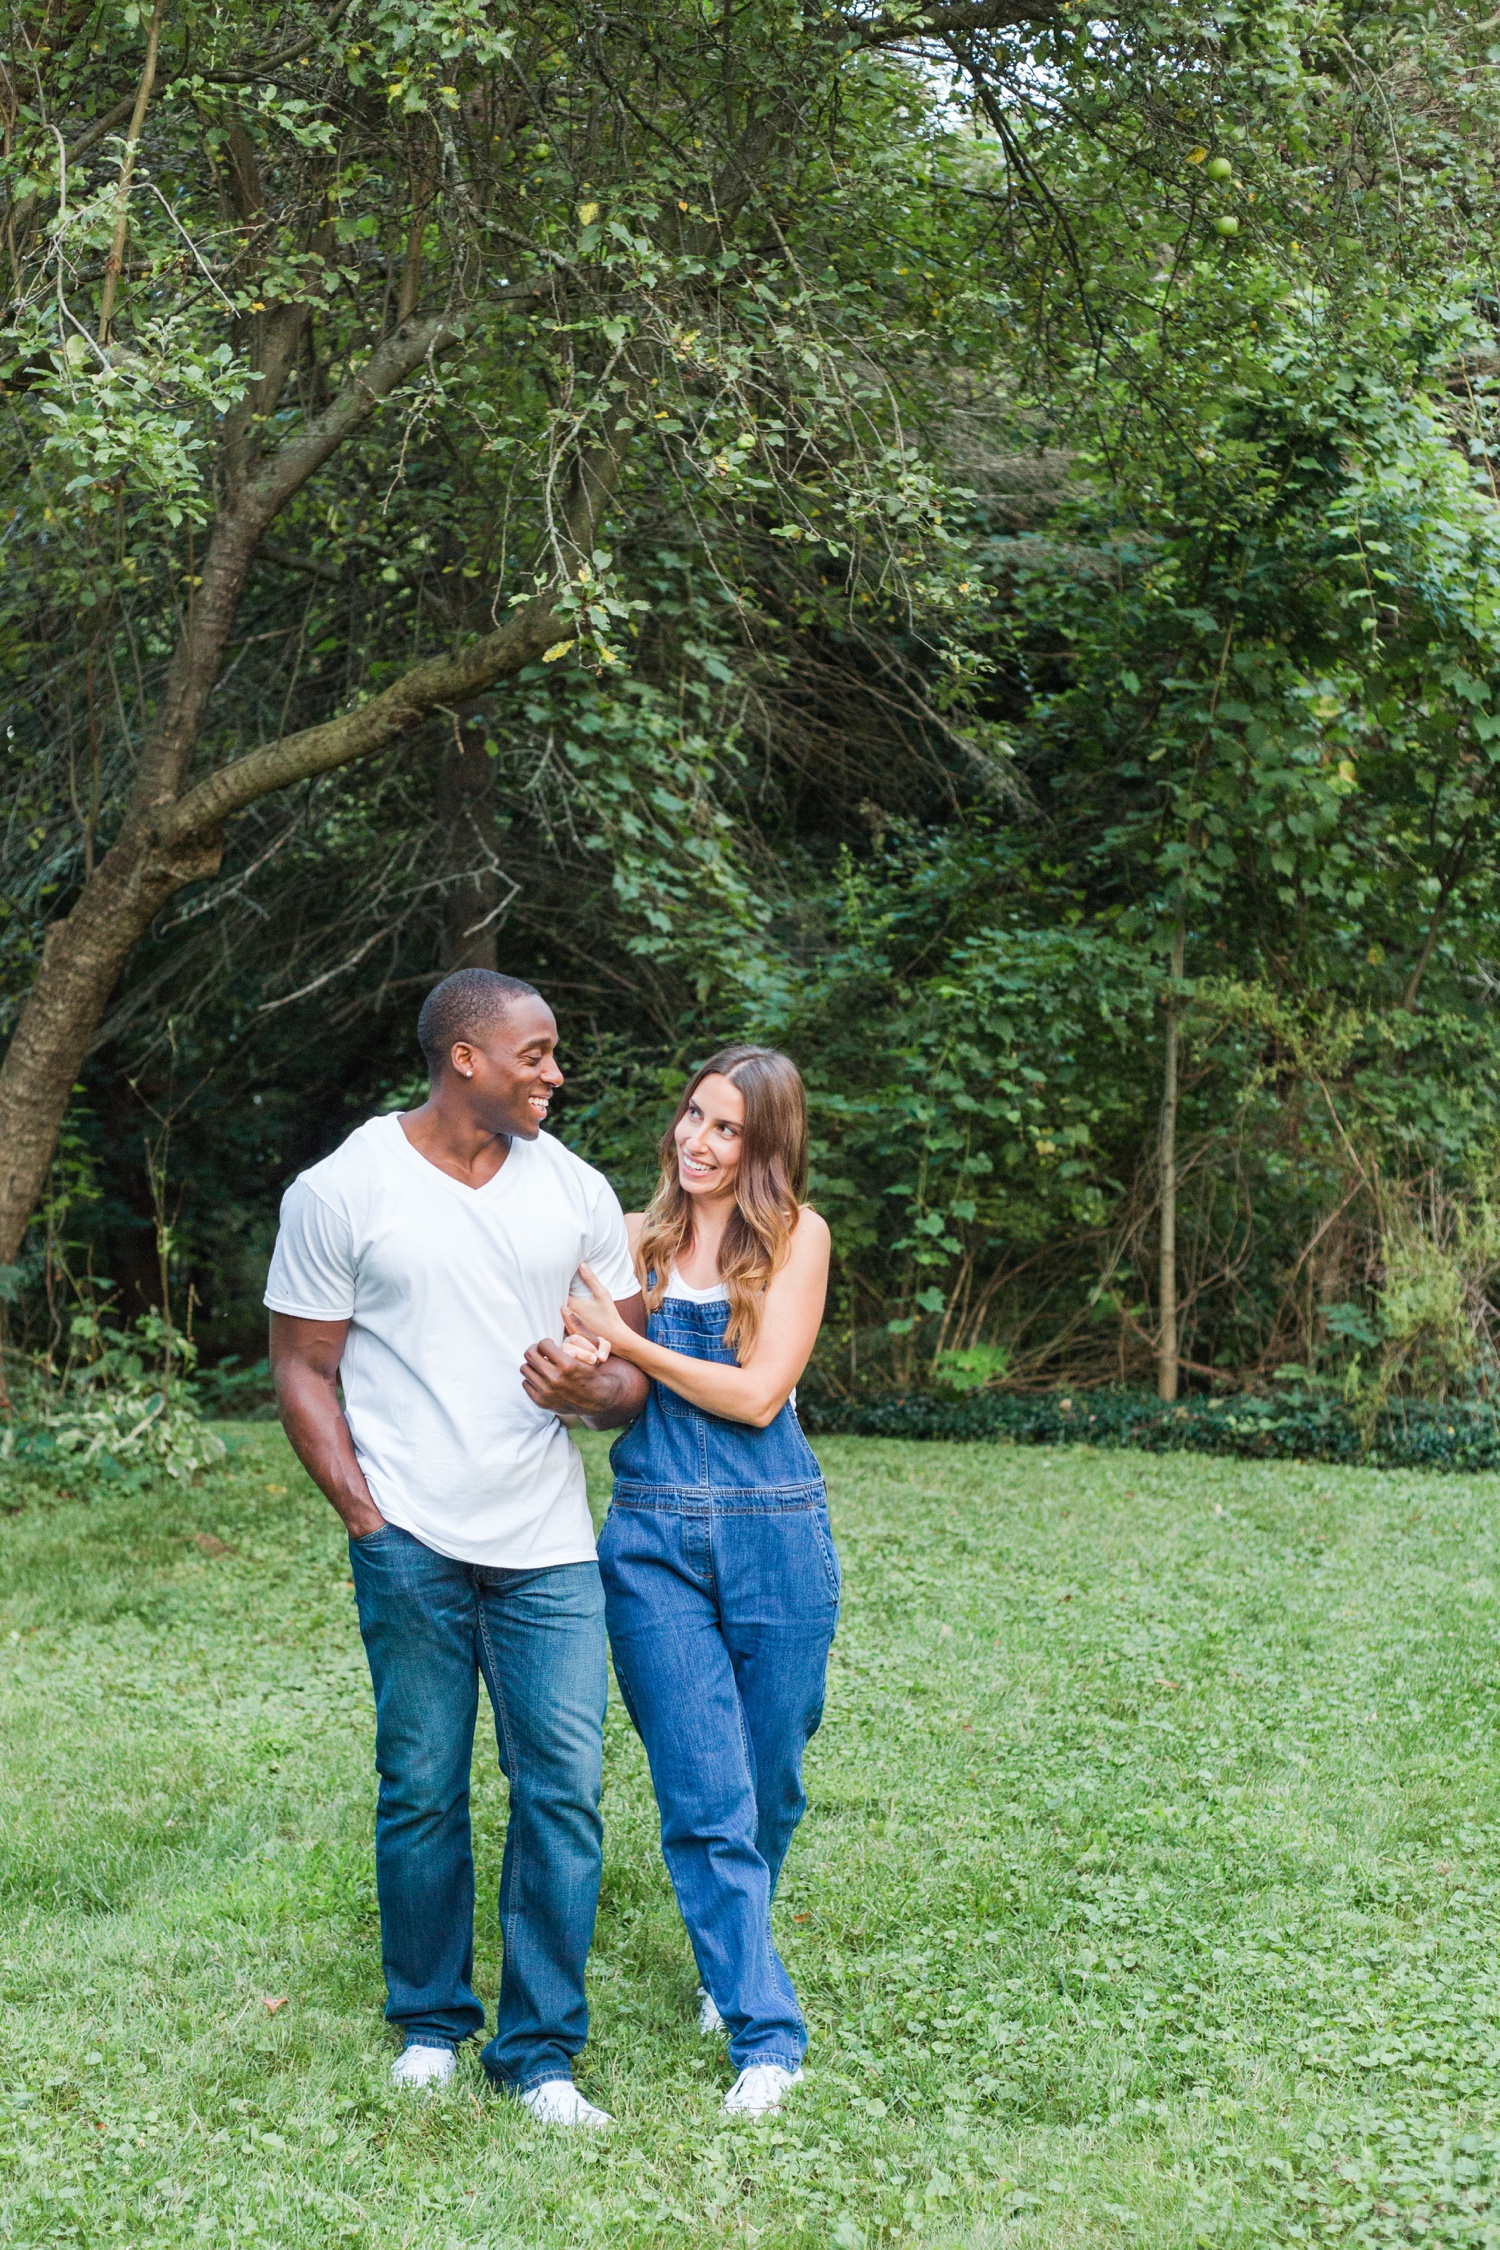 fishkill-hudson-valley-ny-home-engagement-session-top-ct-nyc-destination-wedding-photographer-shaina-lee-photography-photo